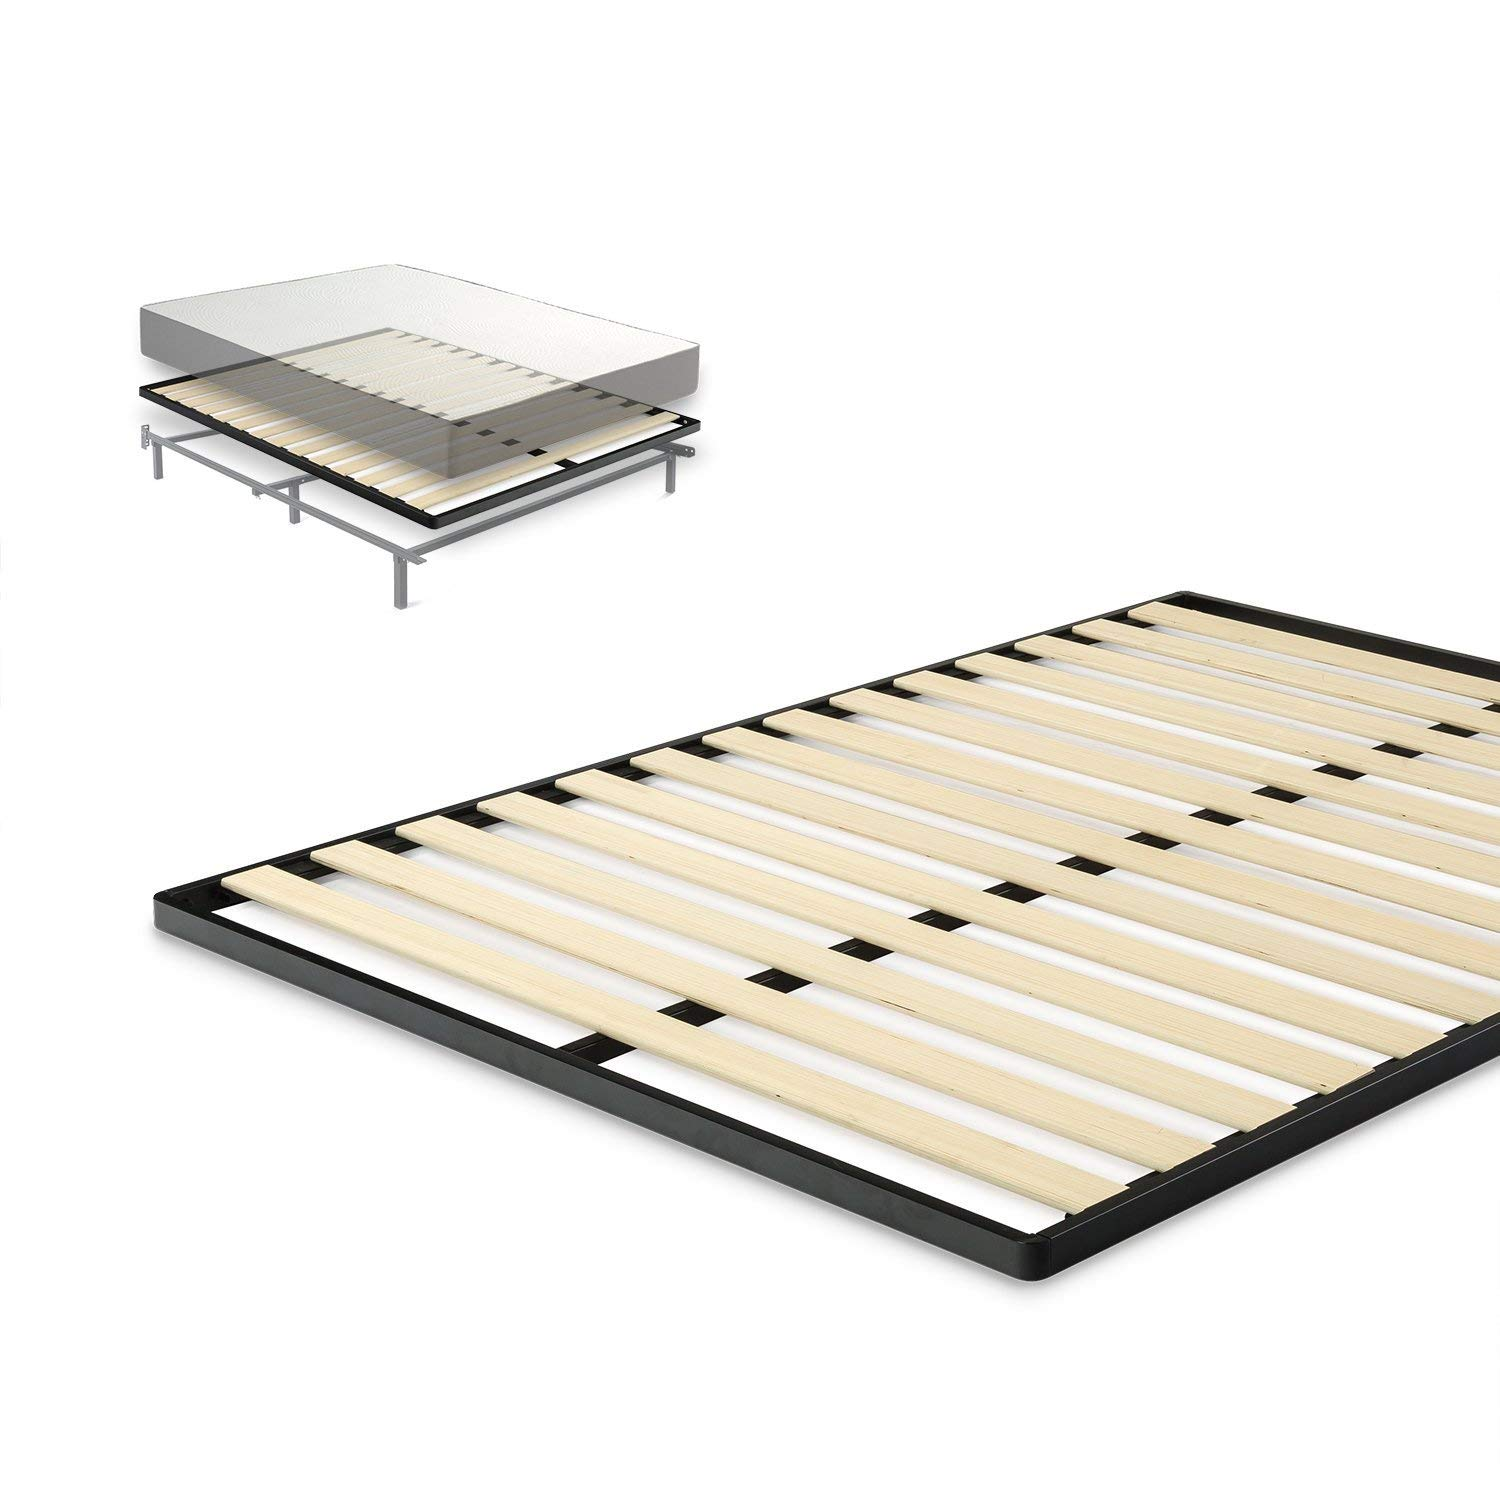 Zinus Easy Assembly Wood Slat 1.6 Inch Bunkie Board/Mattress Foundation/Quick and Easy Assembly, Queen (Renewed)